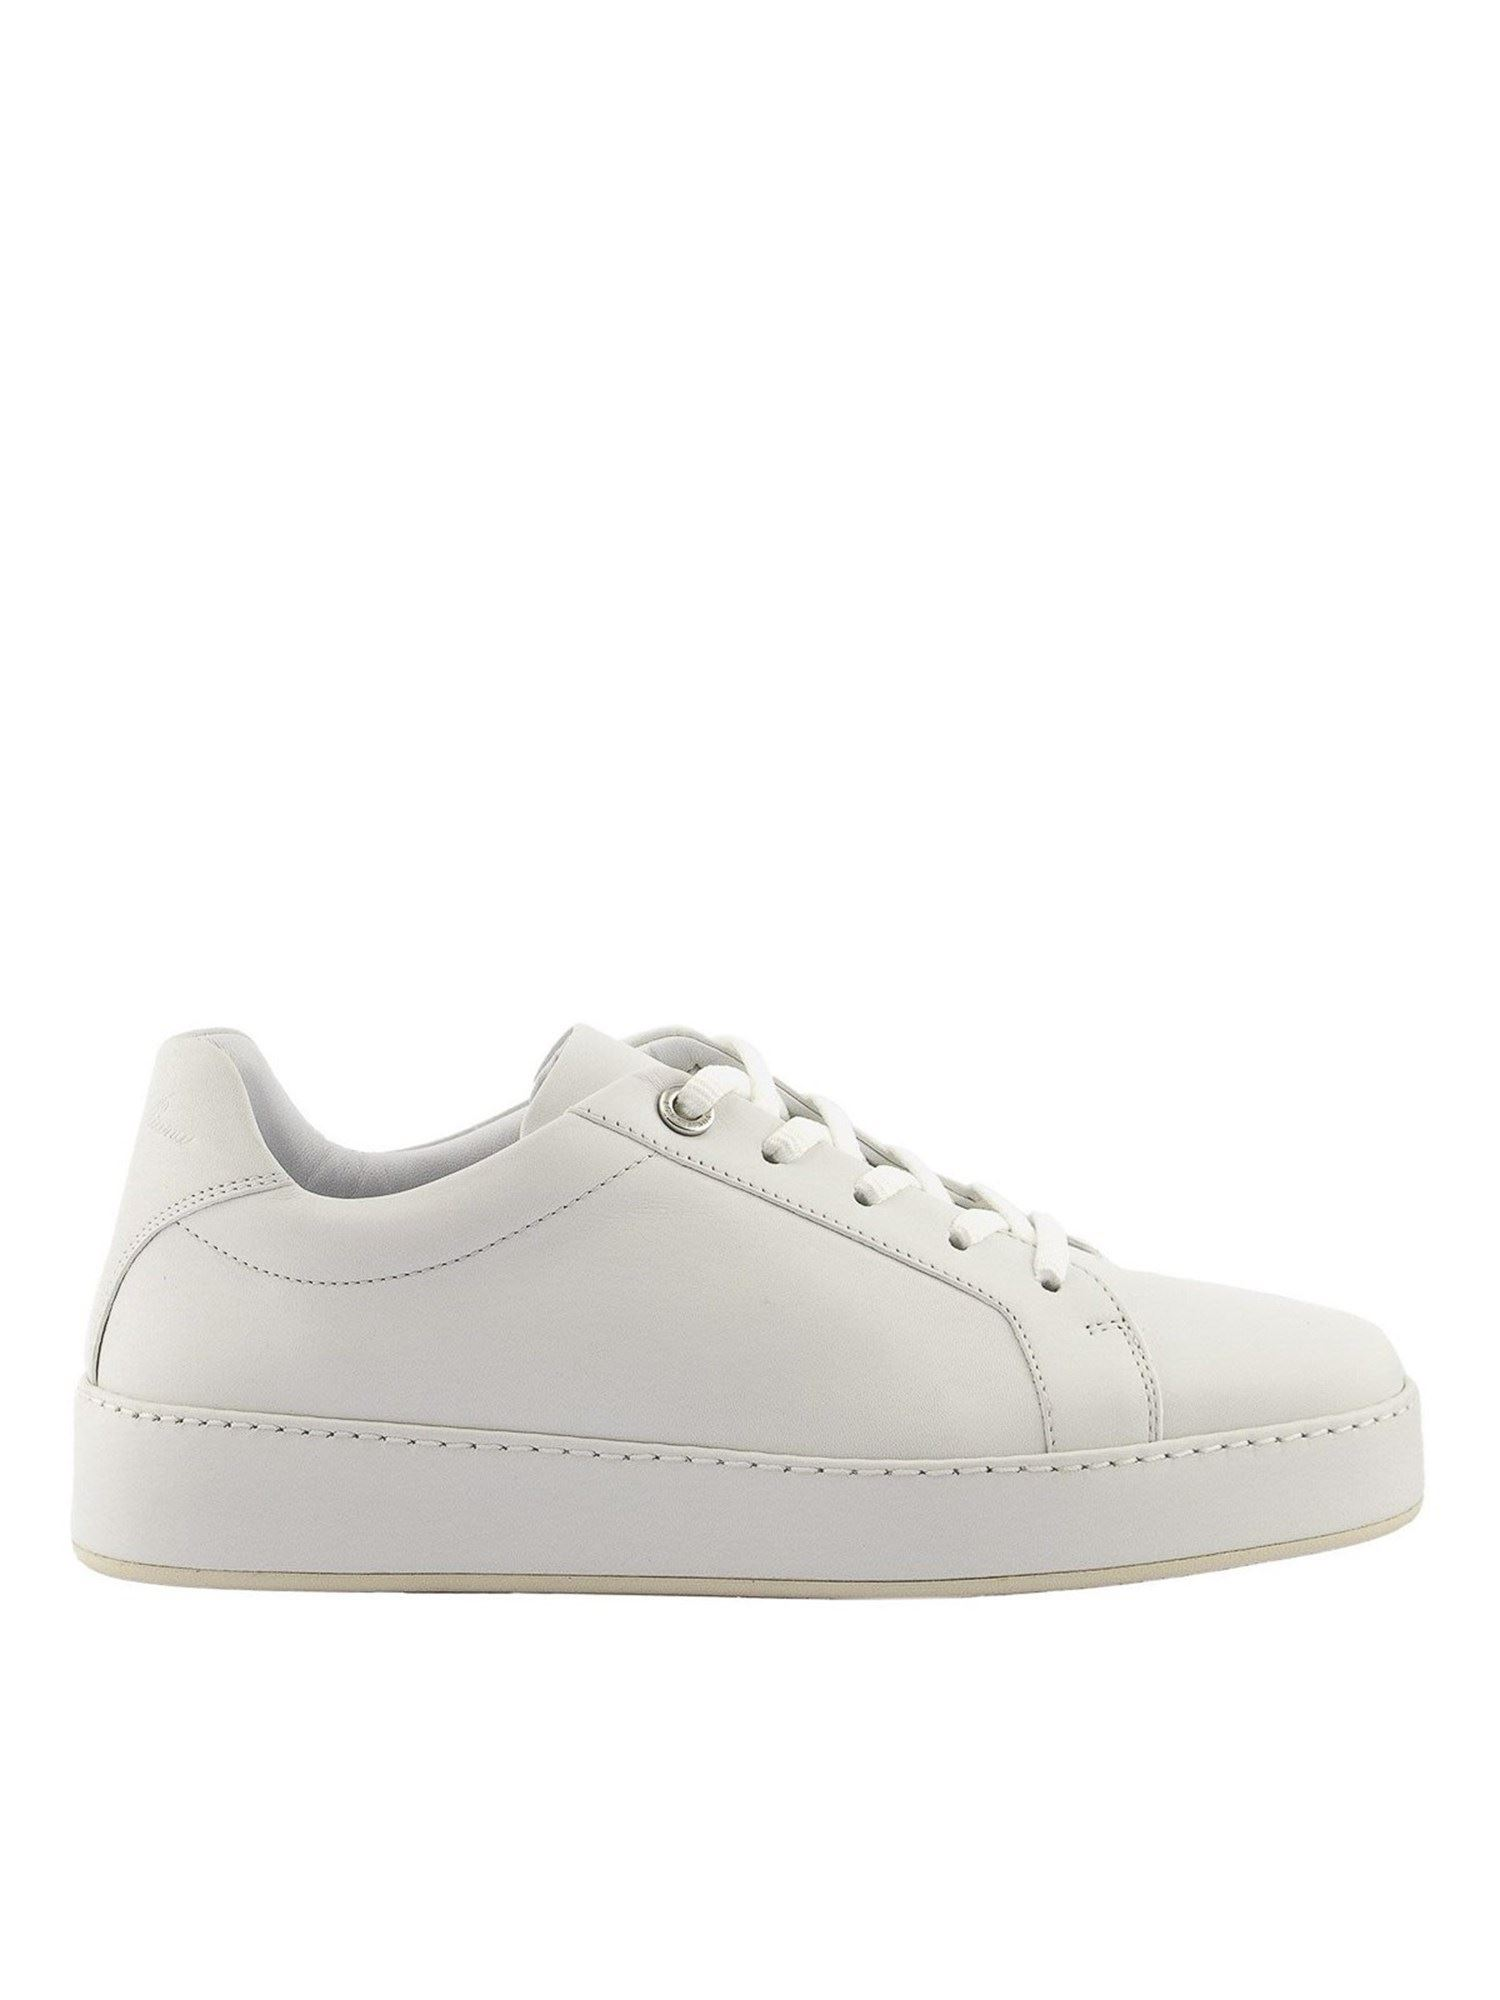 Loro Piana NUAGES CALFSKIN SNEAKERS IN WHITE